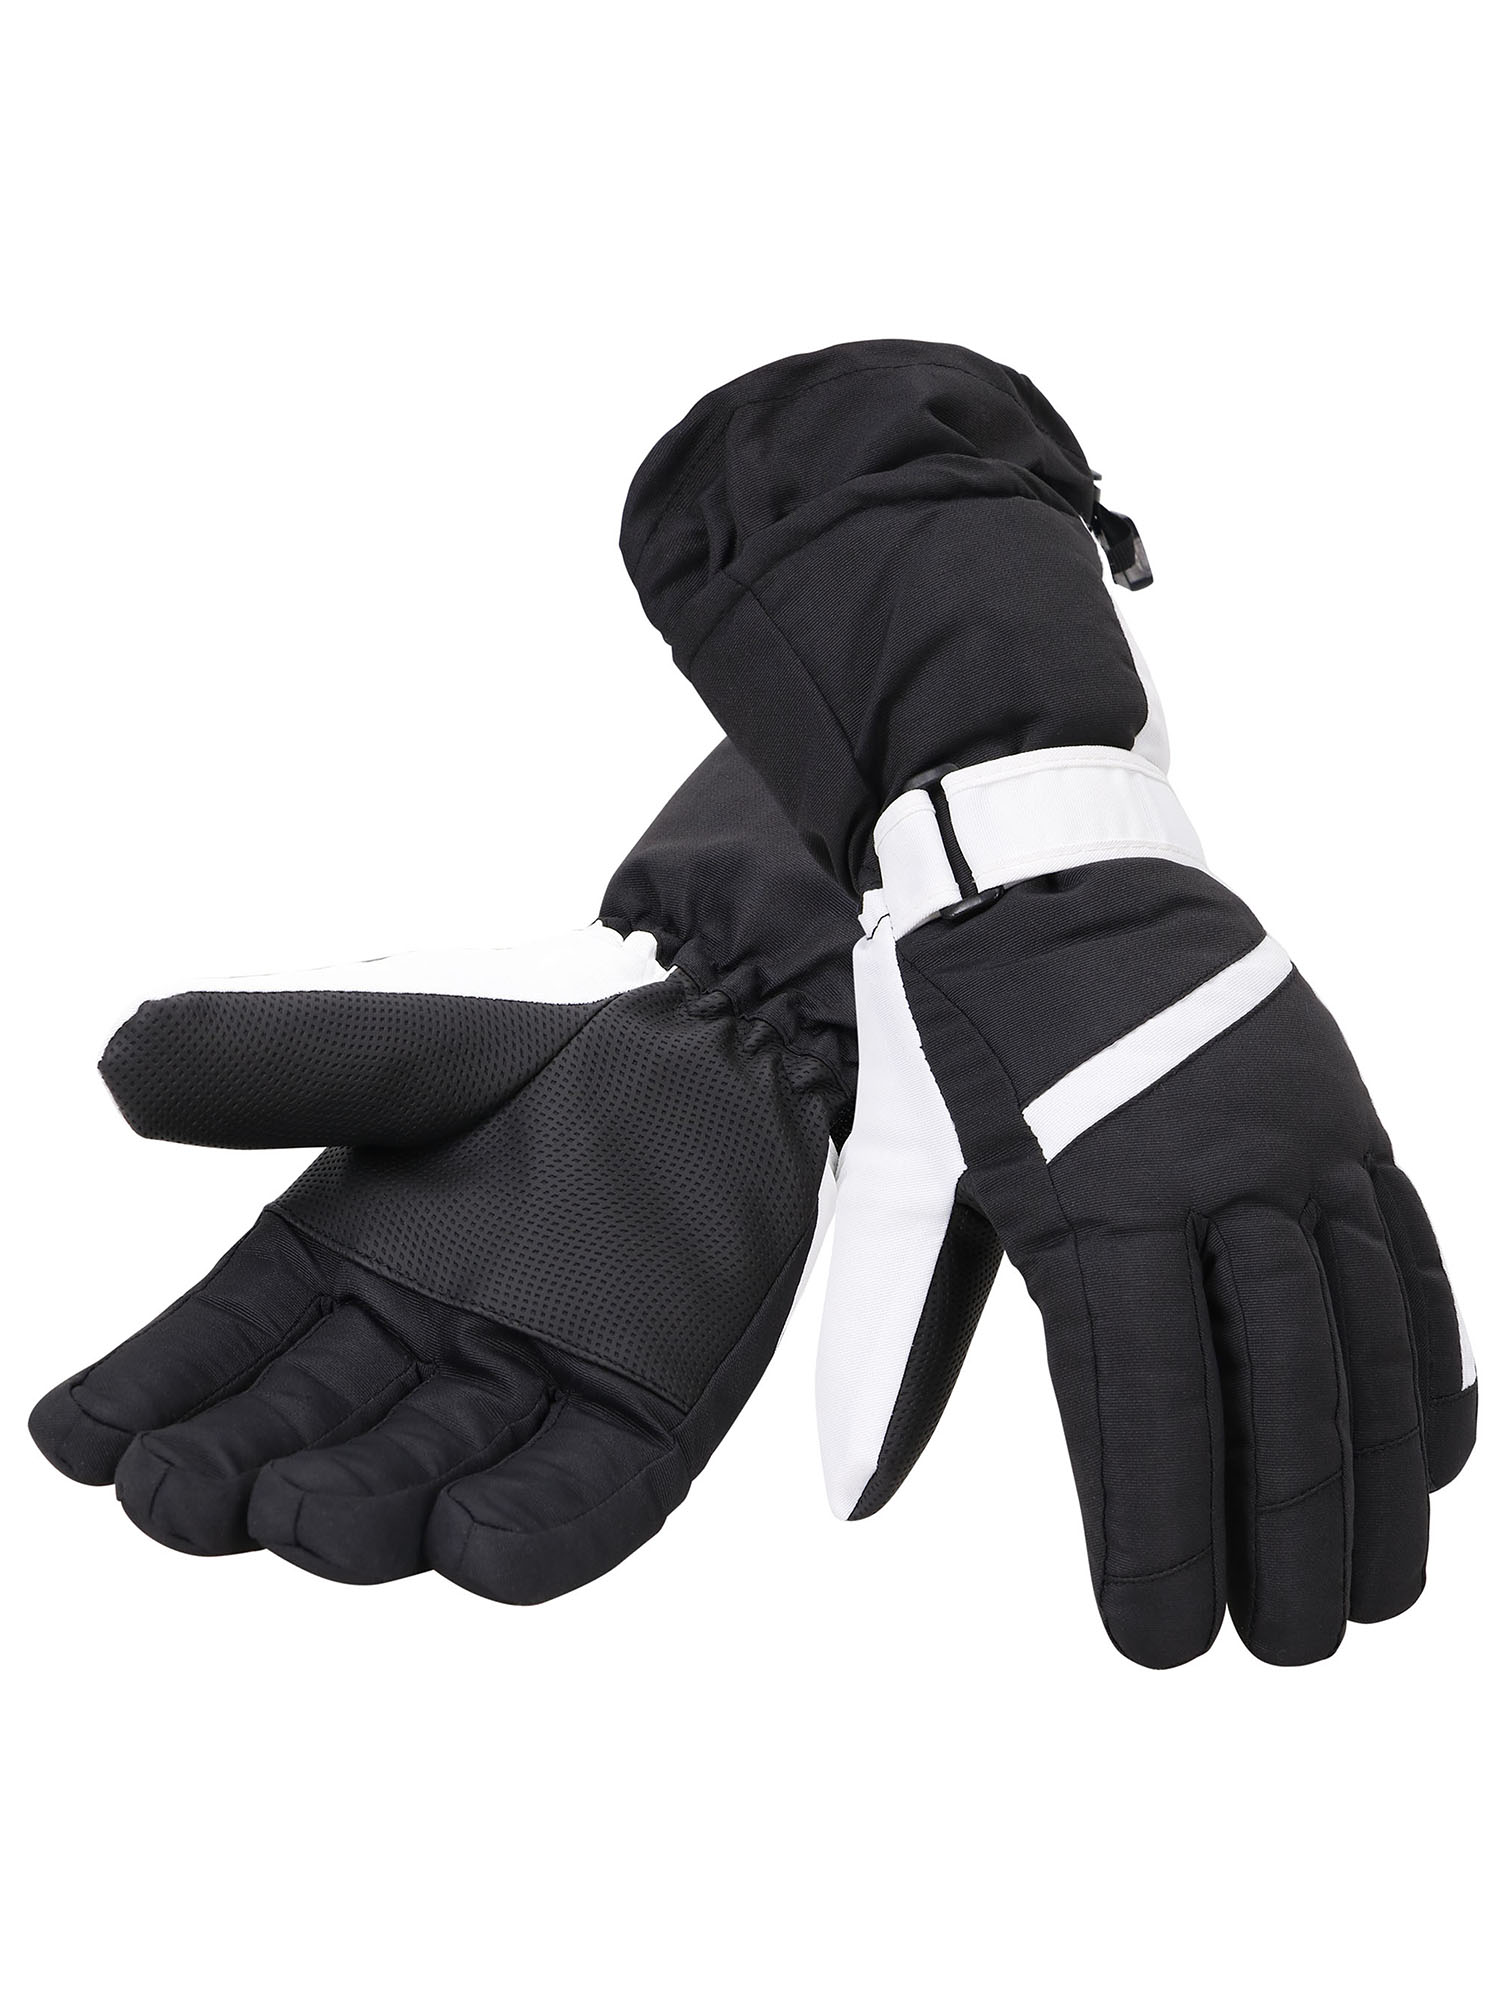 Simplicity Women's Thinsulate Lined Waterproof Outdoor Ski Gloves, S, Black